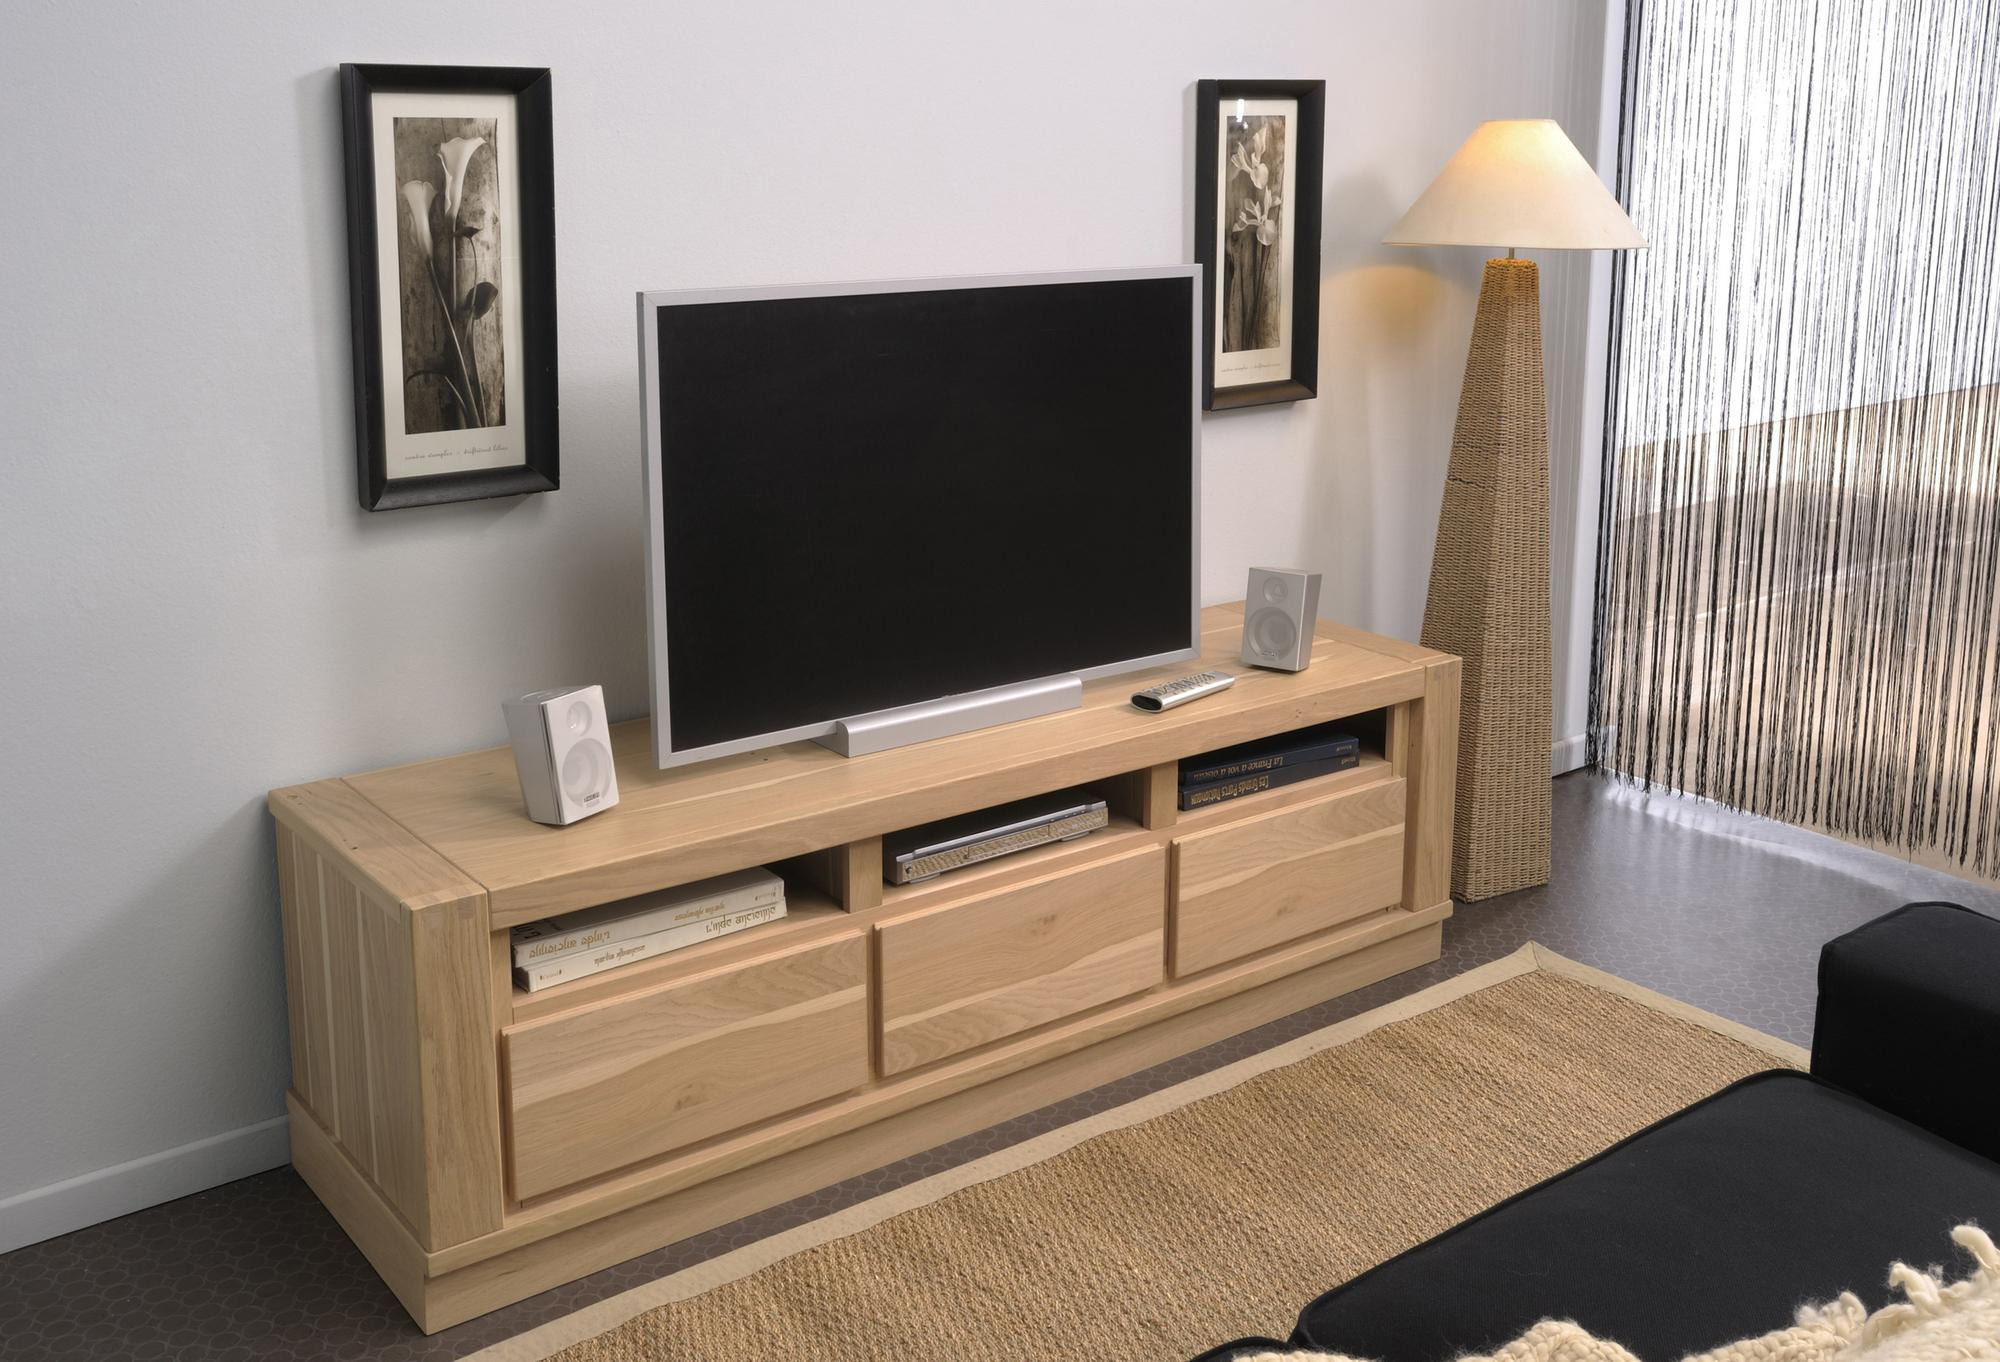 meuble tv pas cher en belgique sammlung von design zeichnungen als inspirierendes. Black Bedroom Furniture Sets. Home Design Ideas